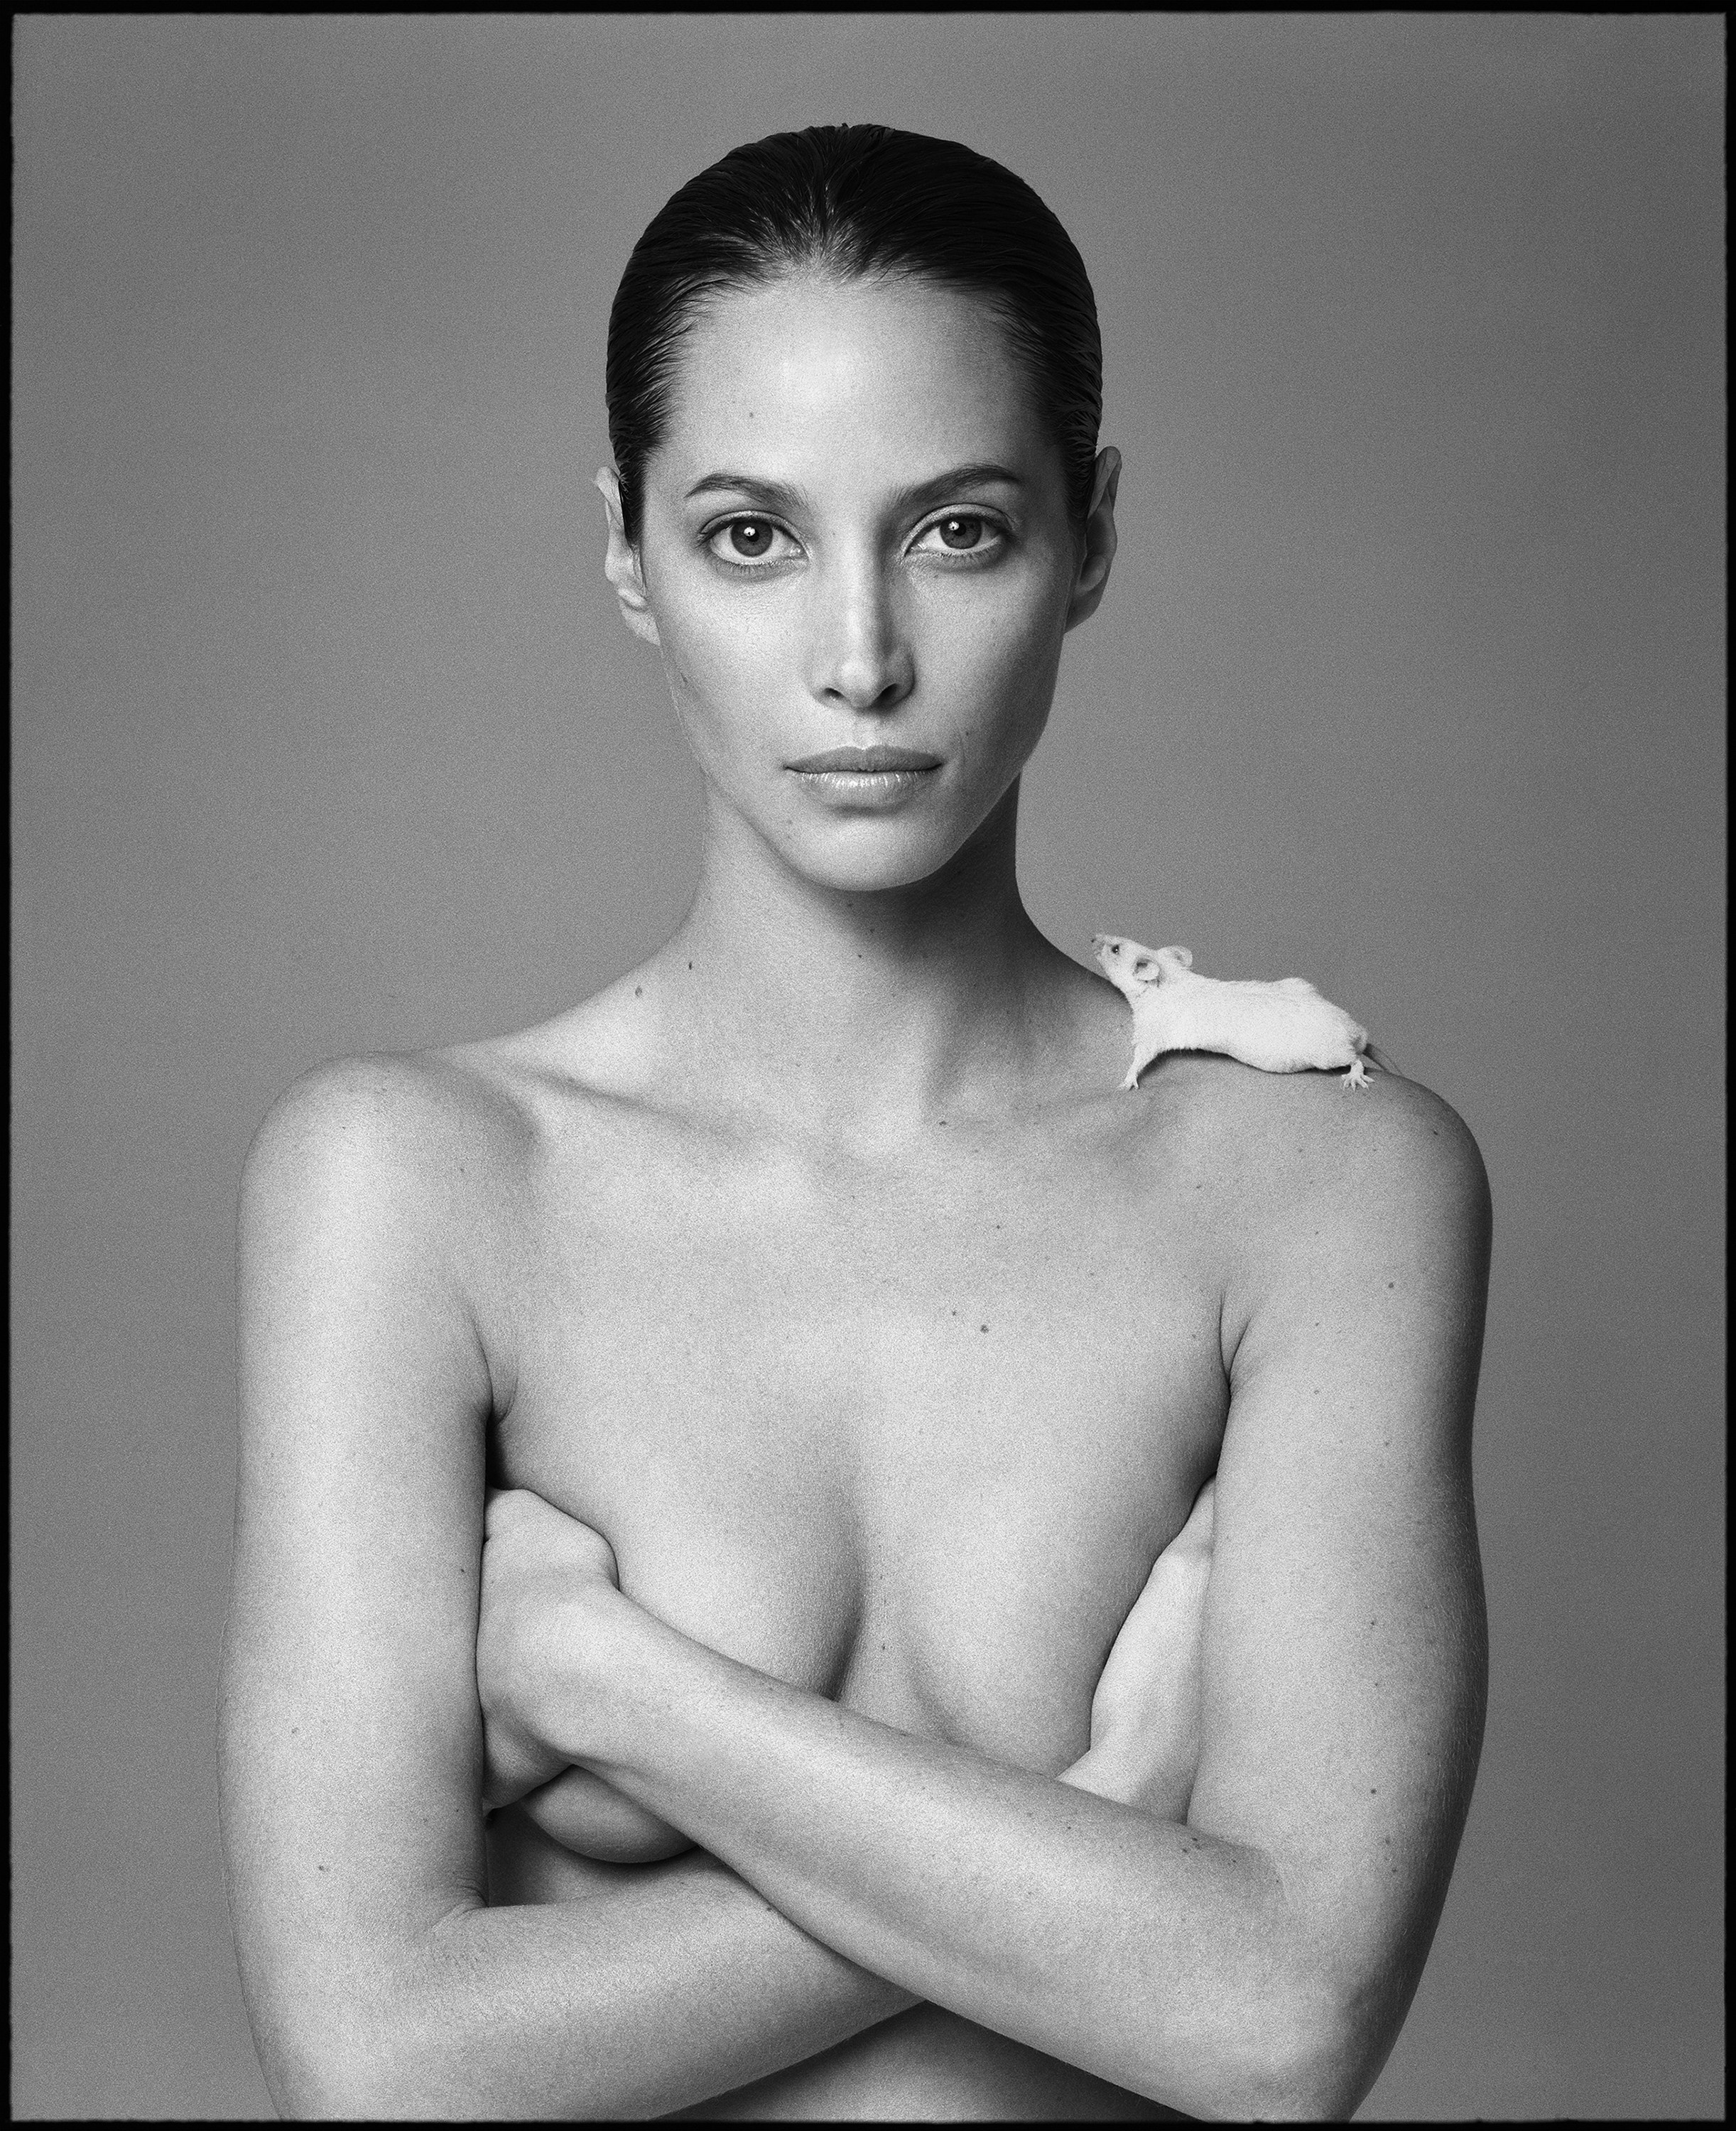 Christy Turlington naked with her arms crossed and a mouse on her shoulder, looking at the camera